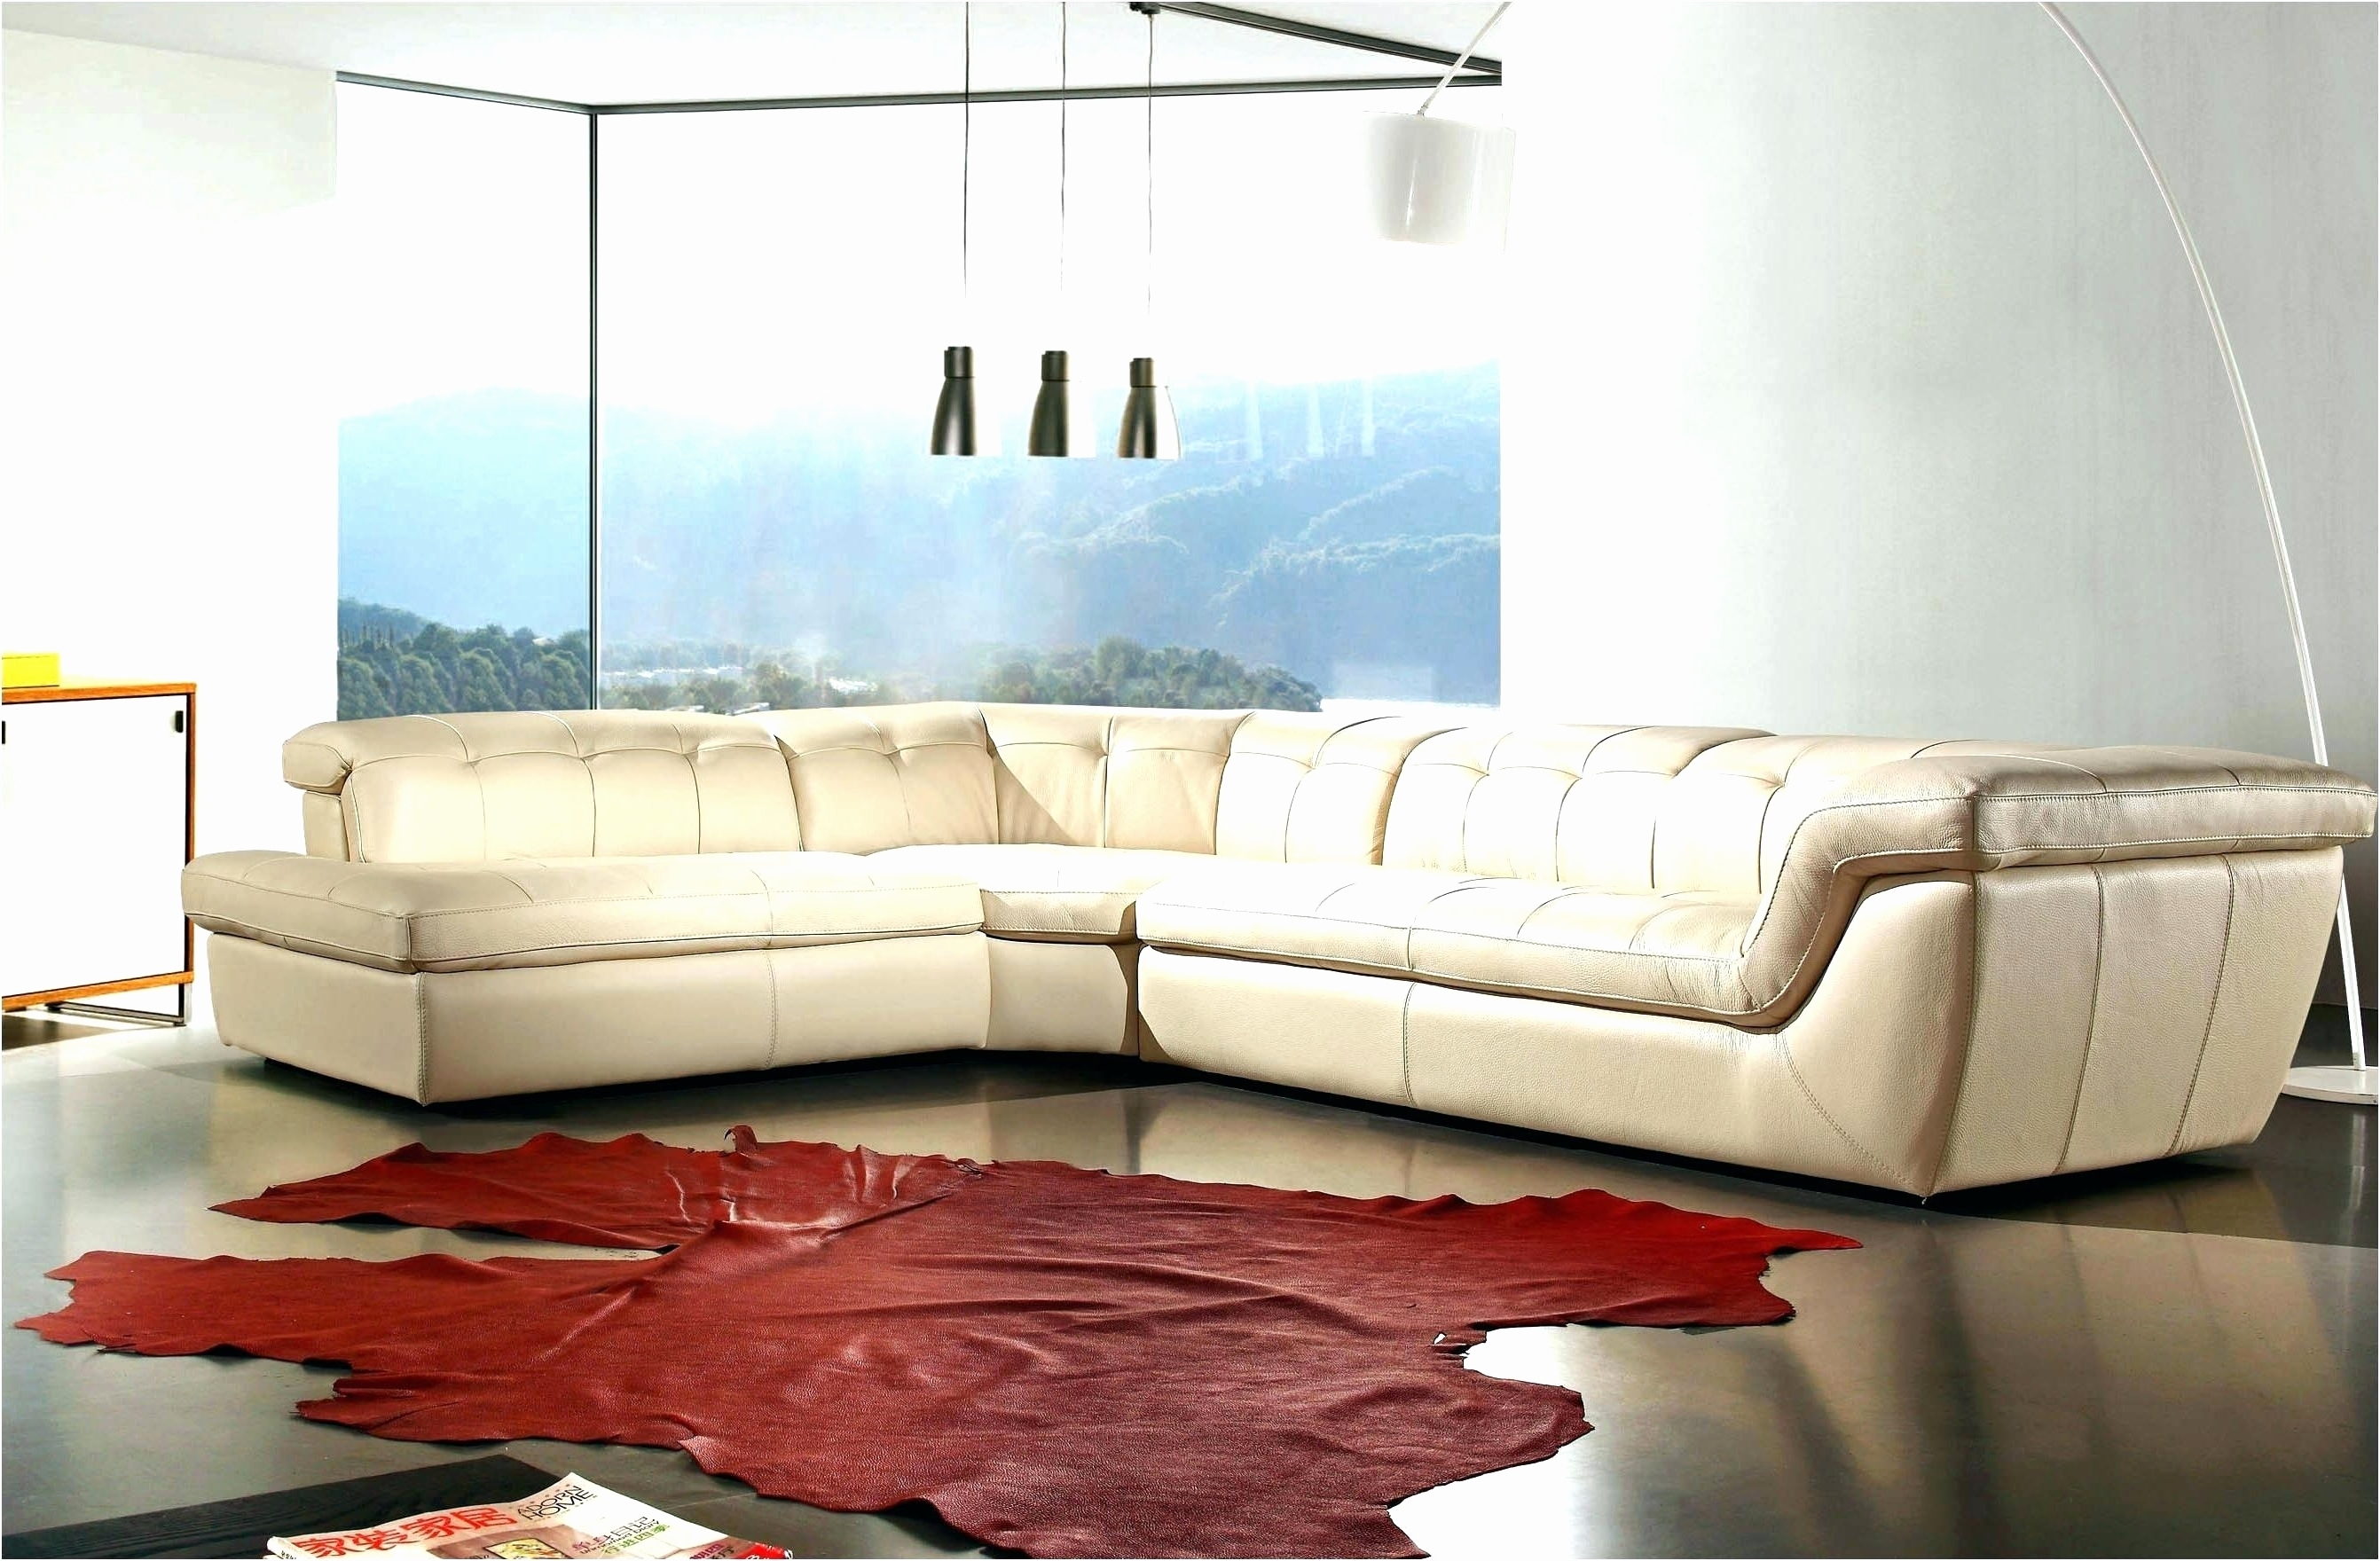 Fresh 6 Piece Microfiber Sectional Sofa 2018 – Couches And Sofas Ideas Intended For Trendy 6 Piece Leather Sectional Sofas (View 11 of 20)